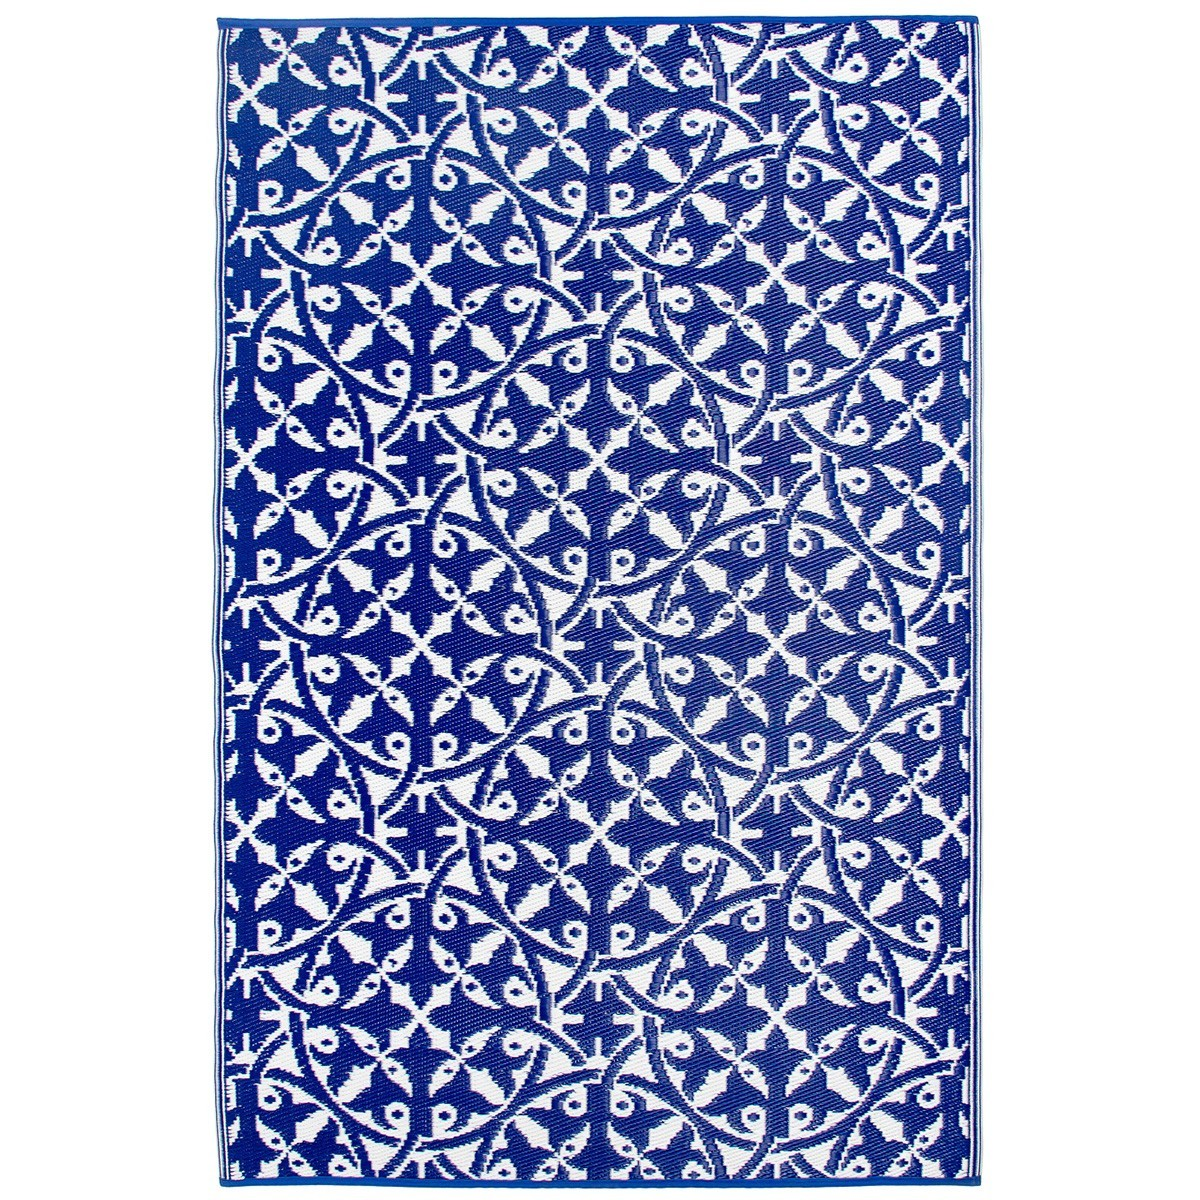 San Juan Reversible Indoor/Outdoor Rug, 120x179cm, Blue